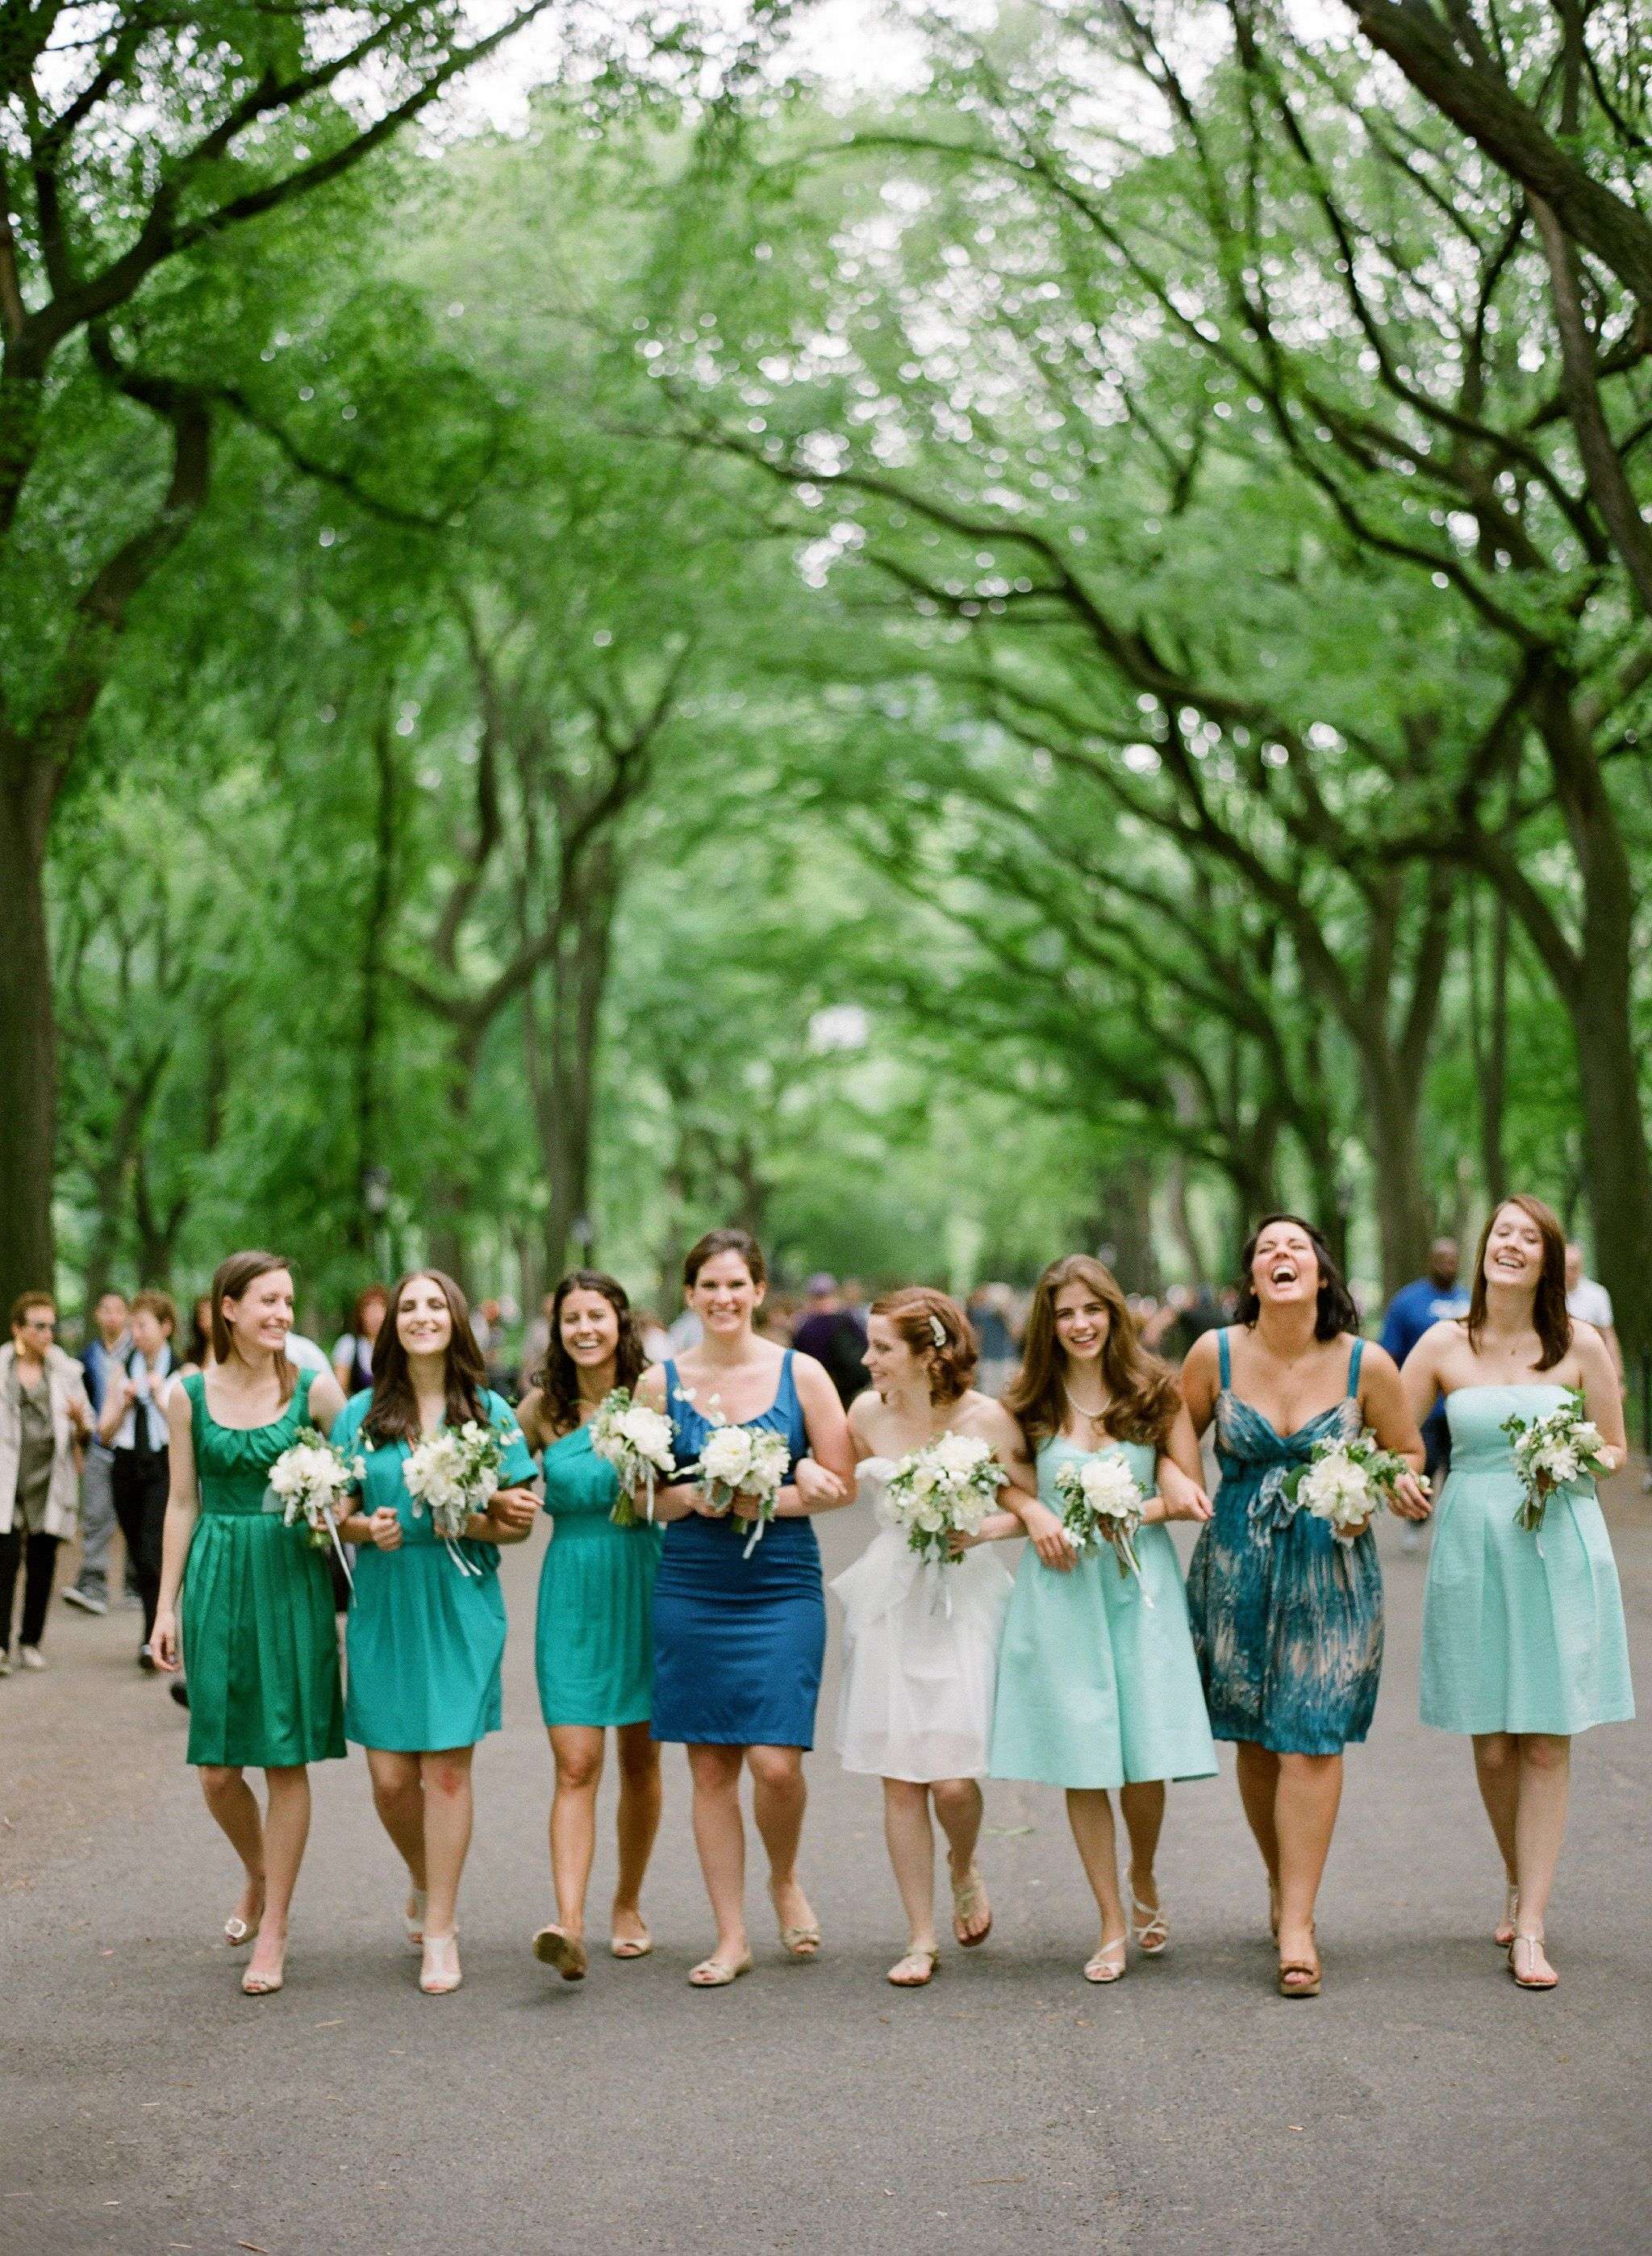 I wish all my bridesmaids lived in the same city. Love this photo from our wedding. (photo by katemurphyphotography.com)